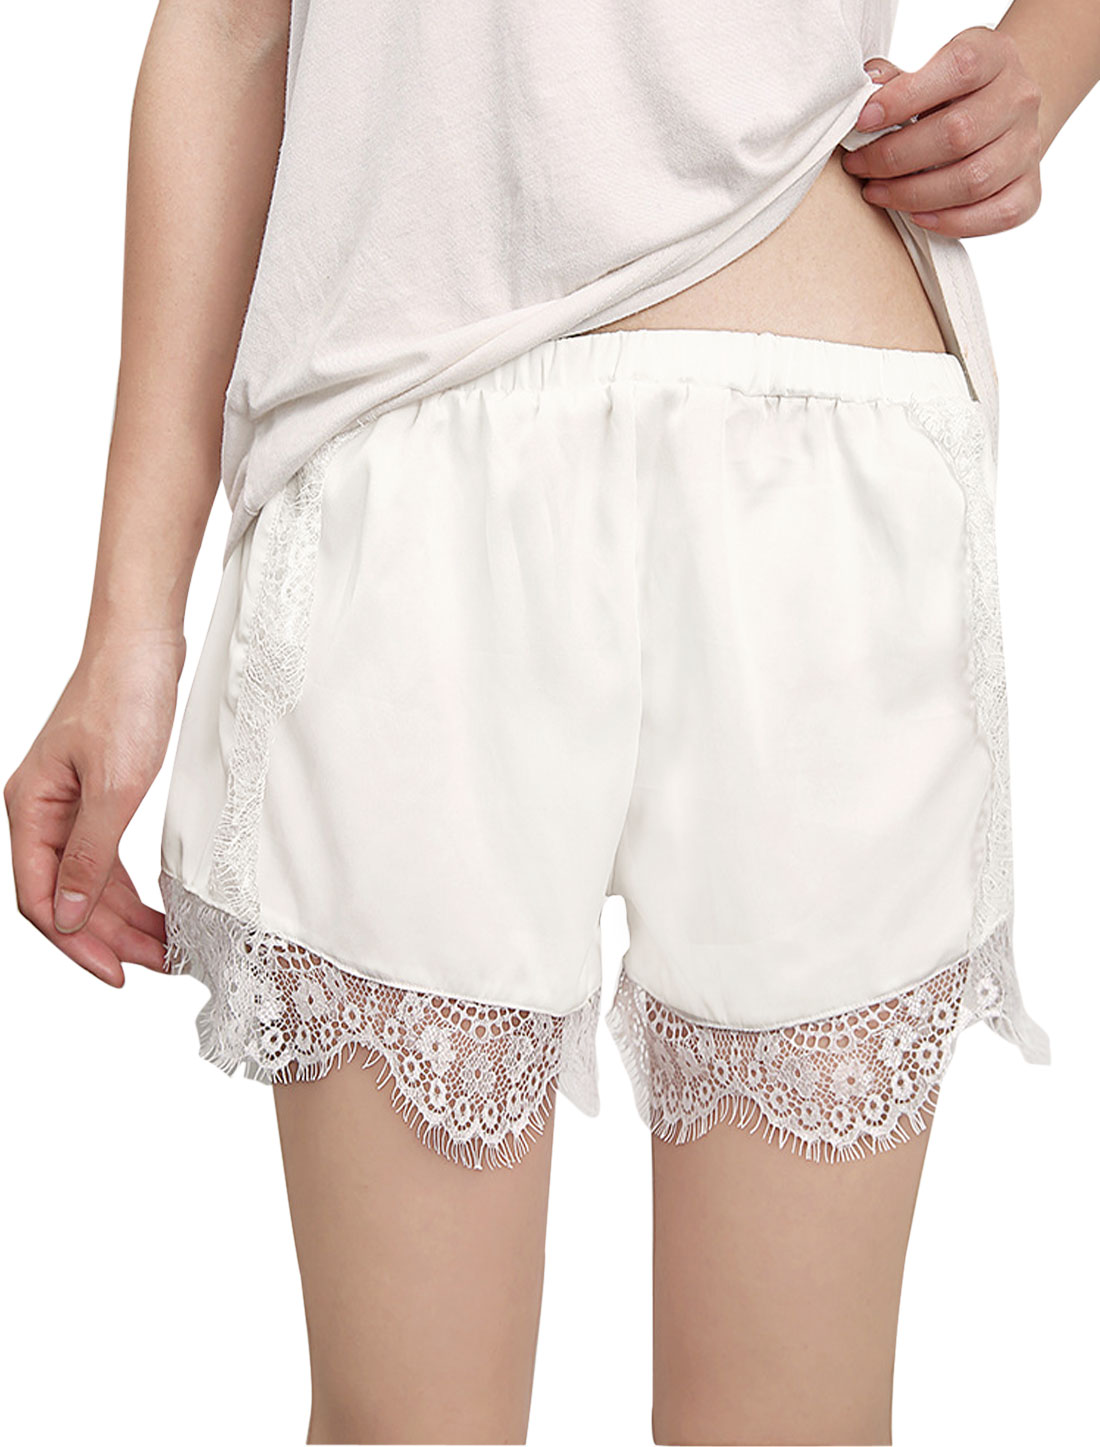 Women Lace Panel Mid Rise Scalloped Trim Legging Shorts White XS